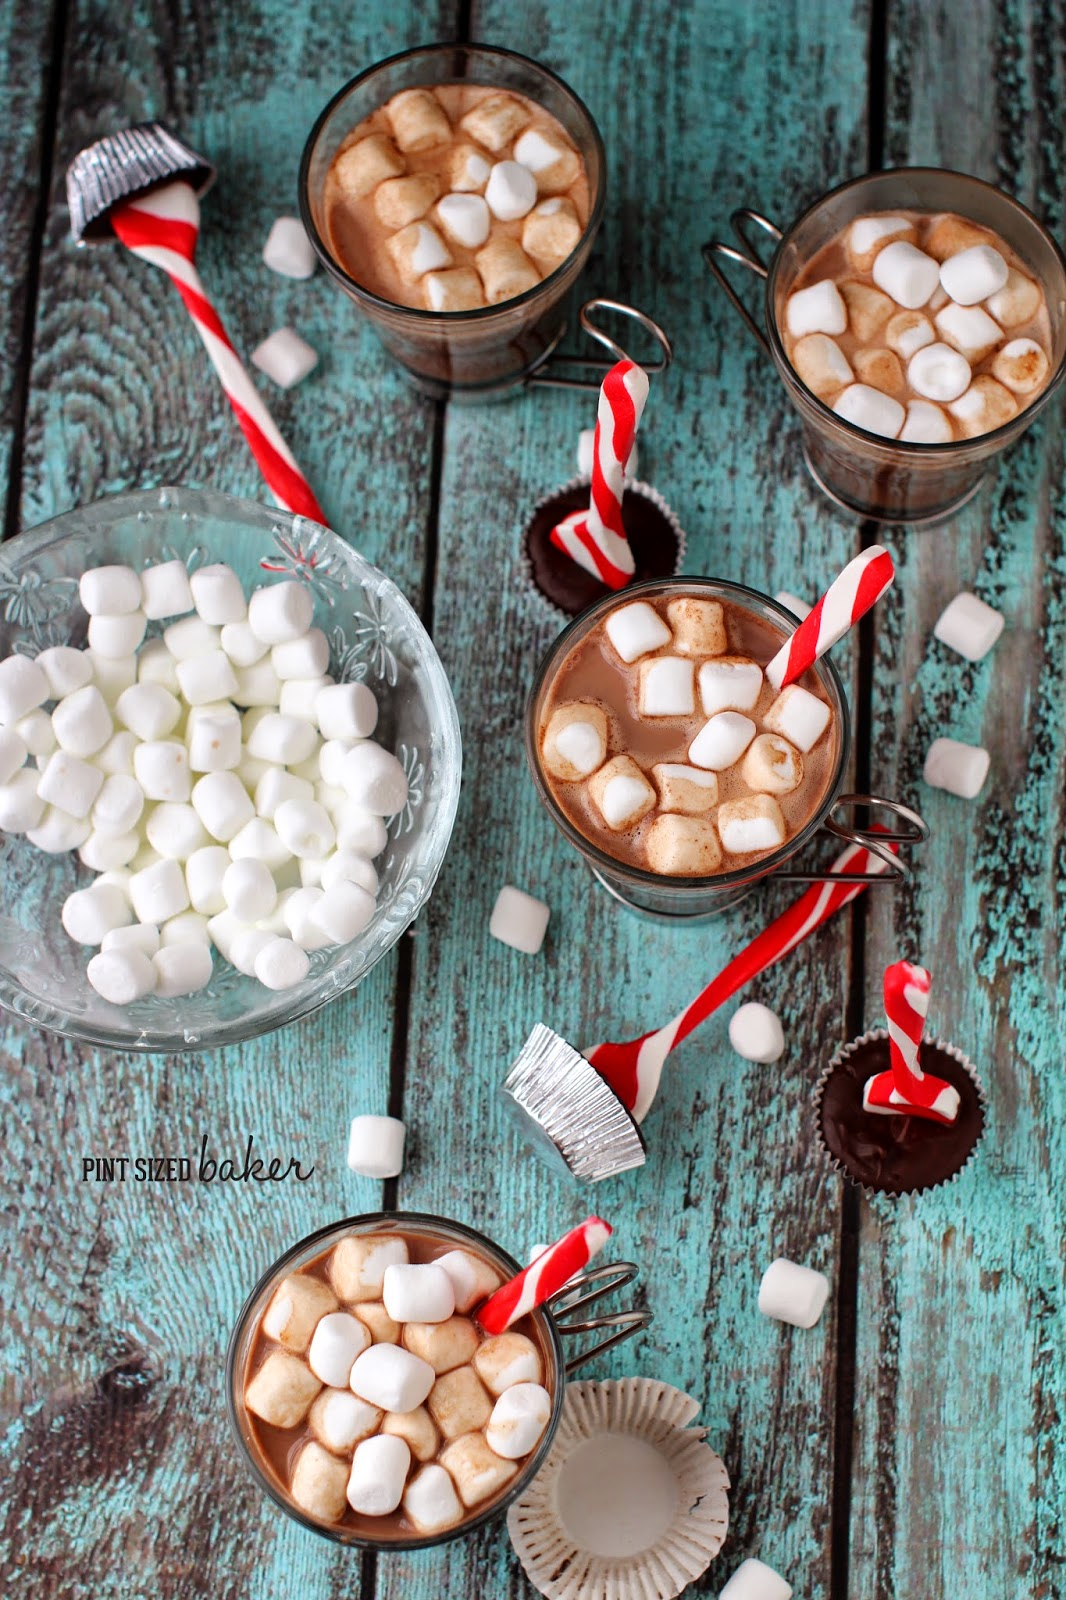 This Stove top Hot Chocolate with Peppermint Dippers taste delicious together! It'll become your favorite drink to come home to after a long day!